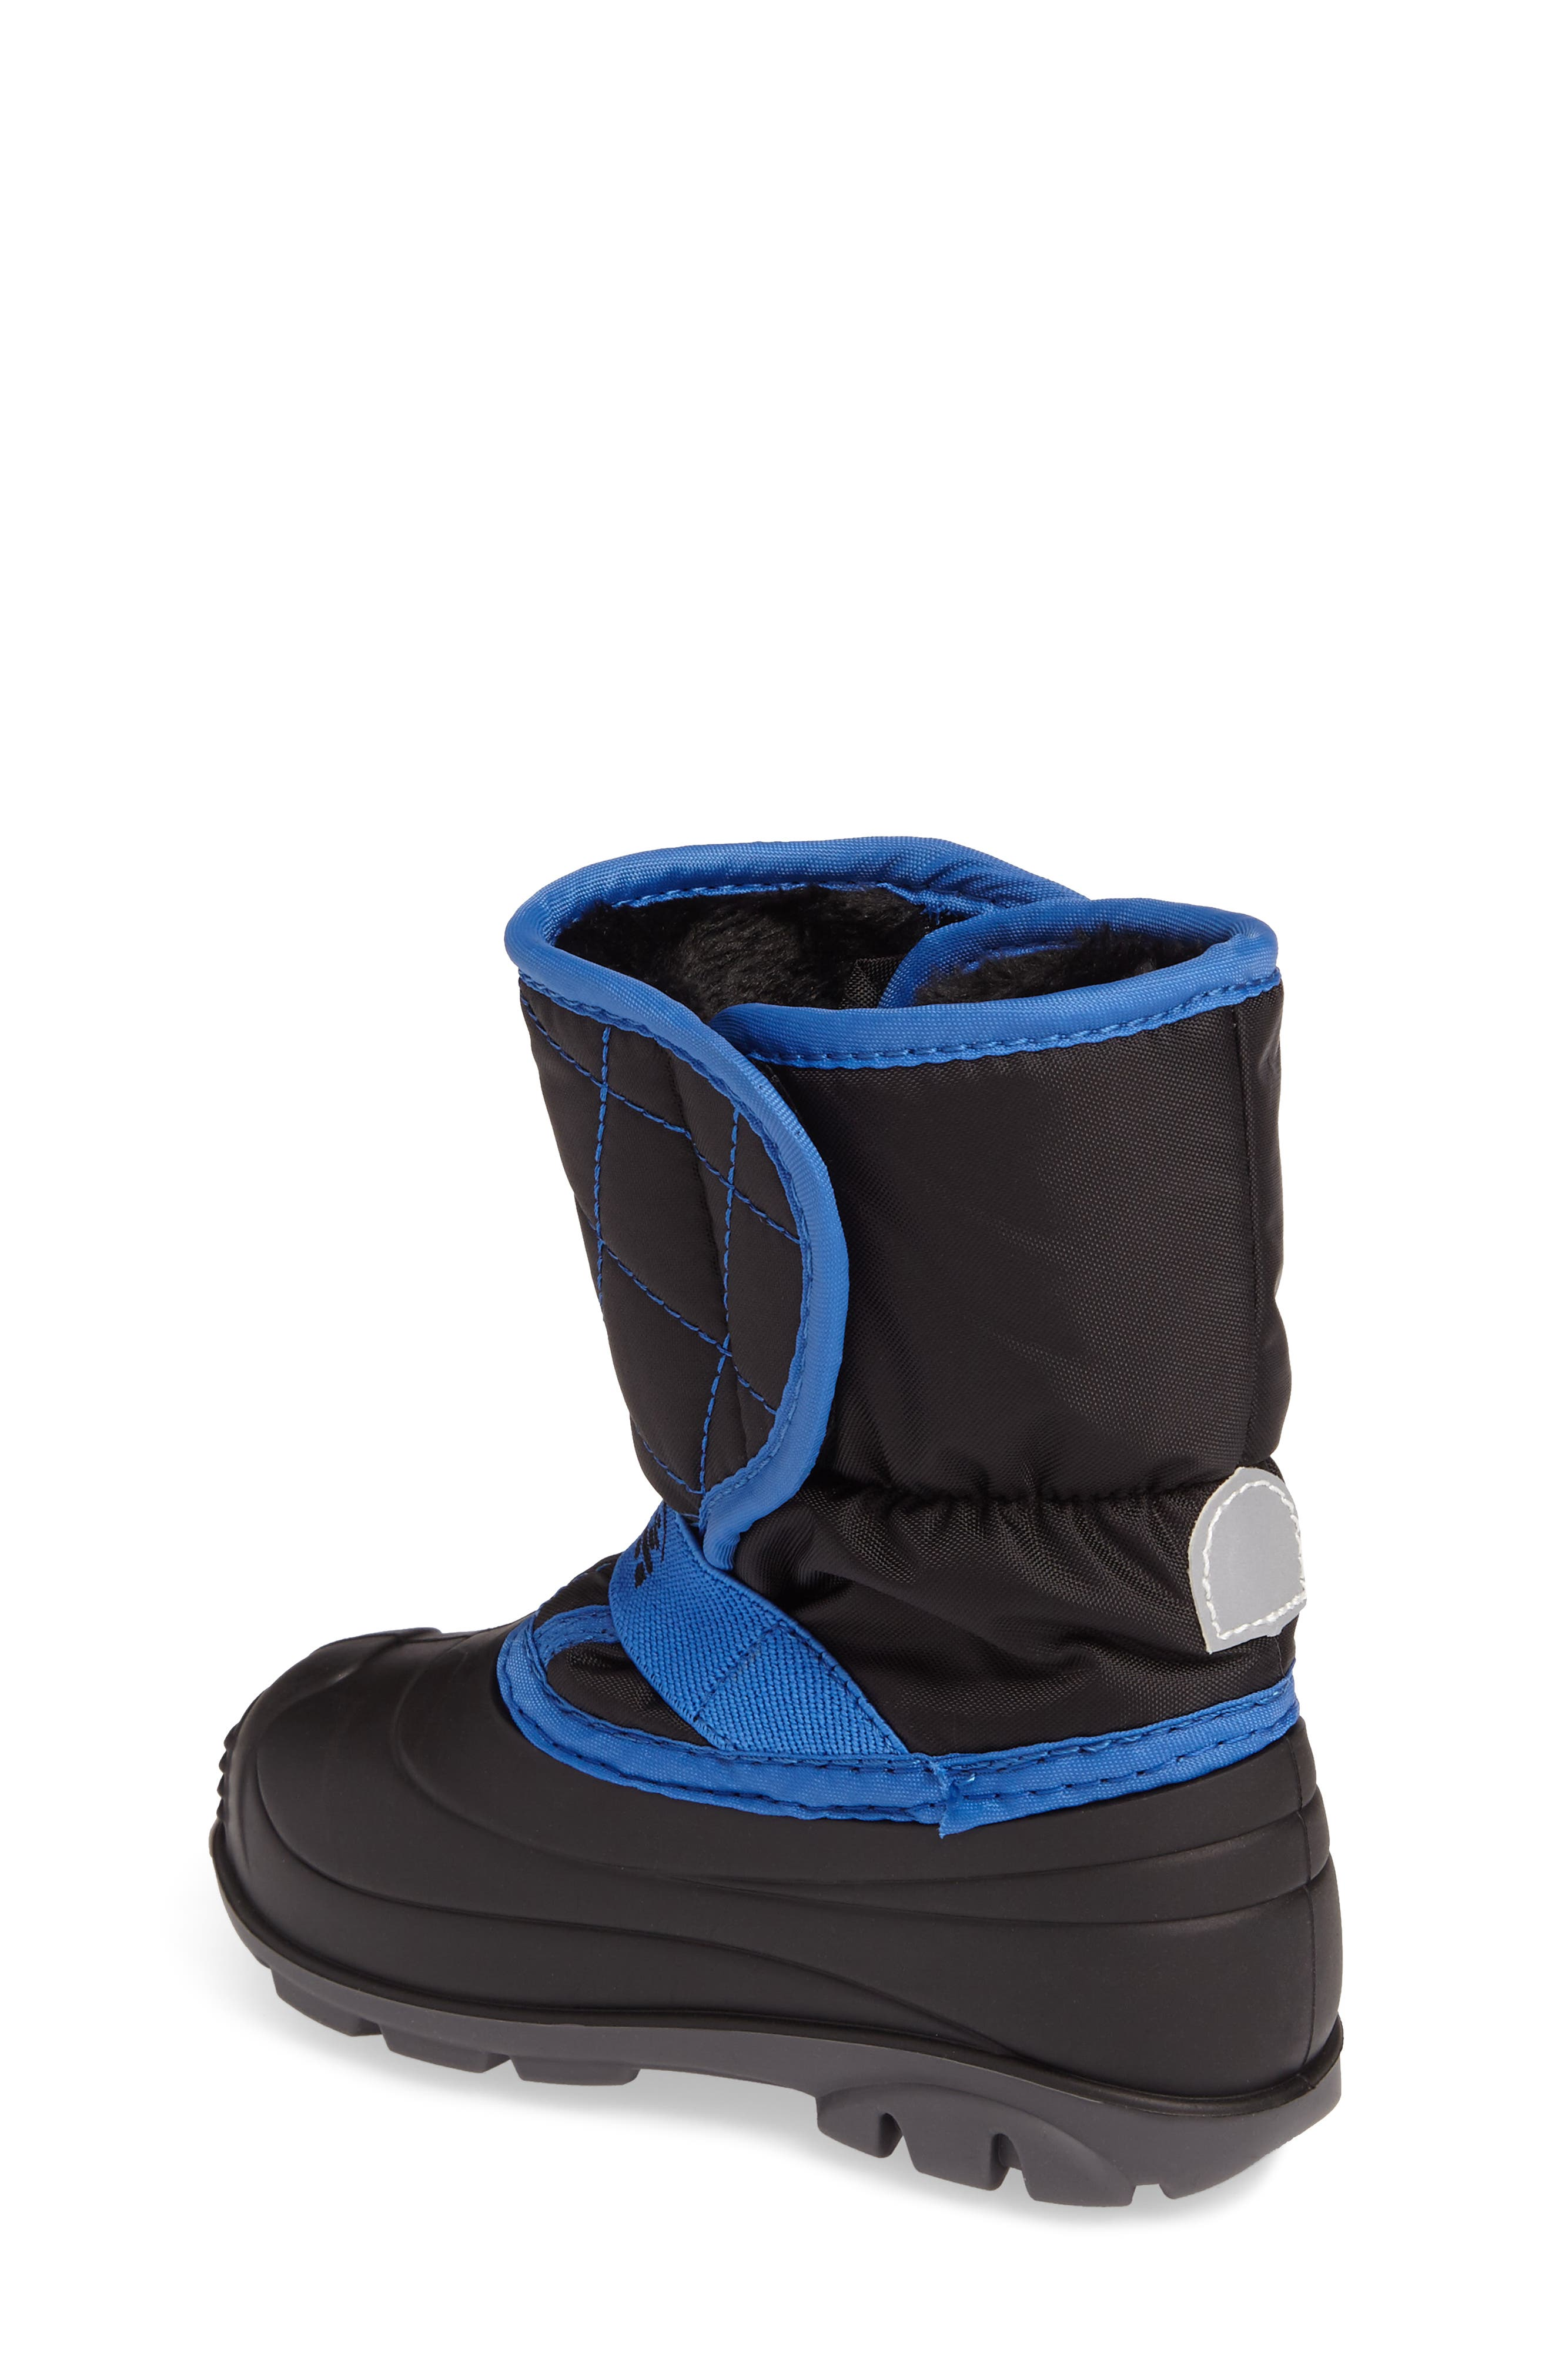 Pika2 Faux Fur Insulated Waterproof Snow Boot,                             Alternate thumbnail 2, color,                             010